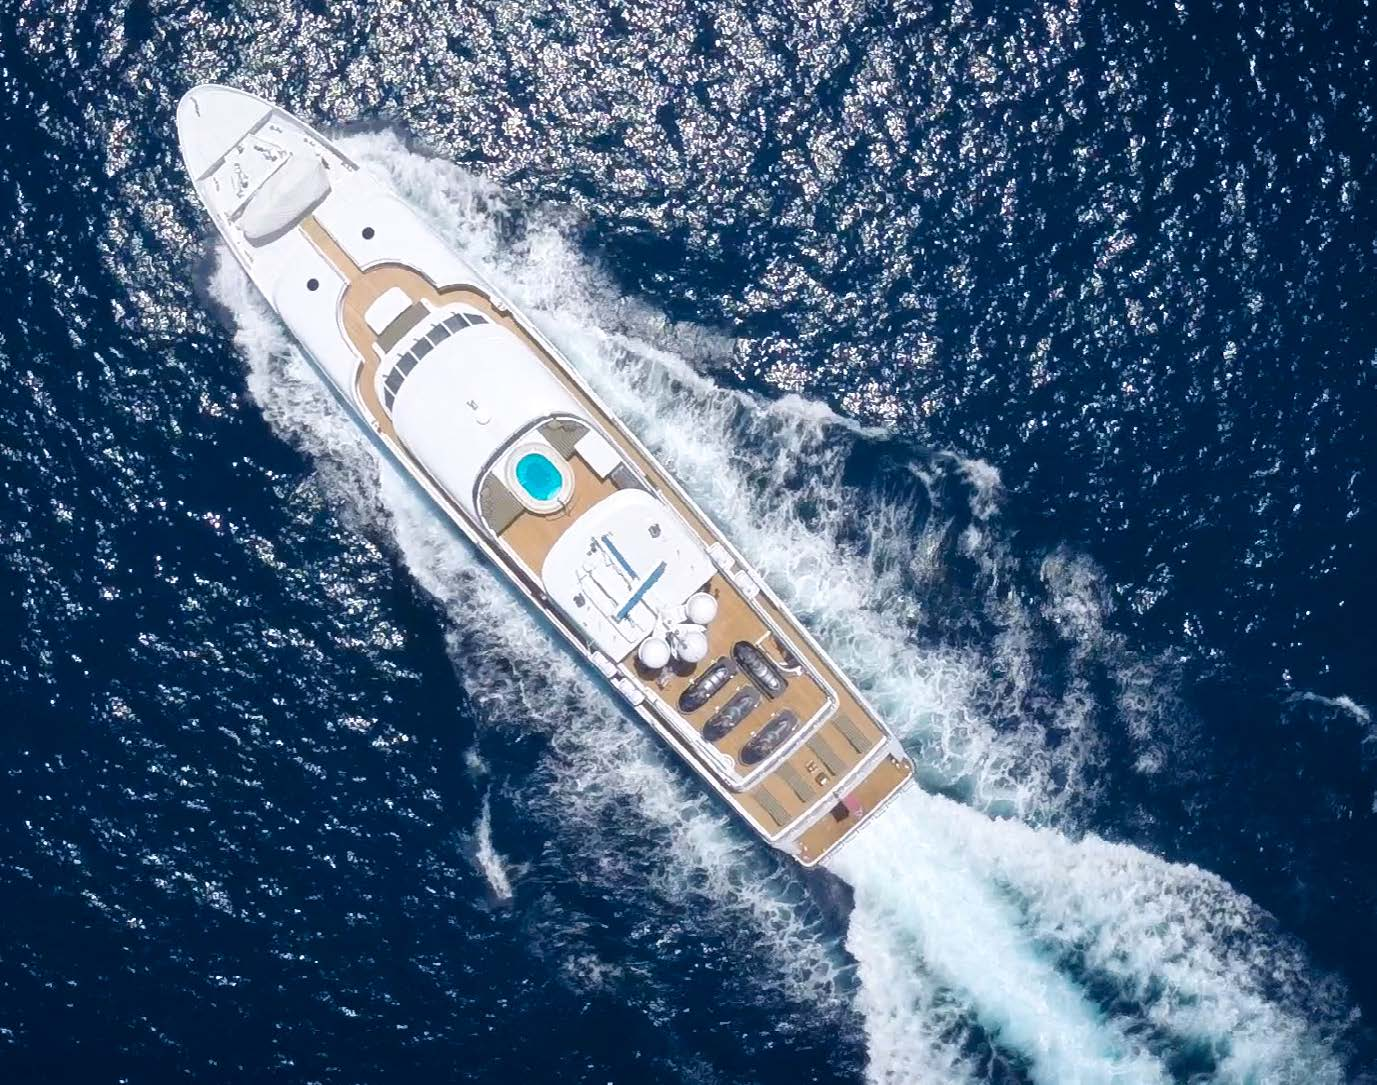 Aerial view of the superyacht